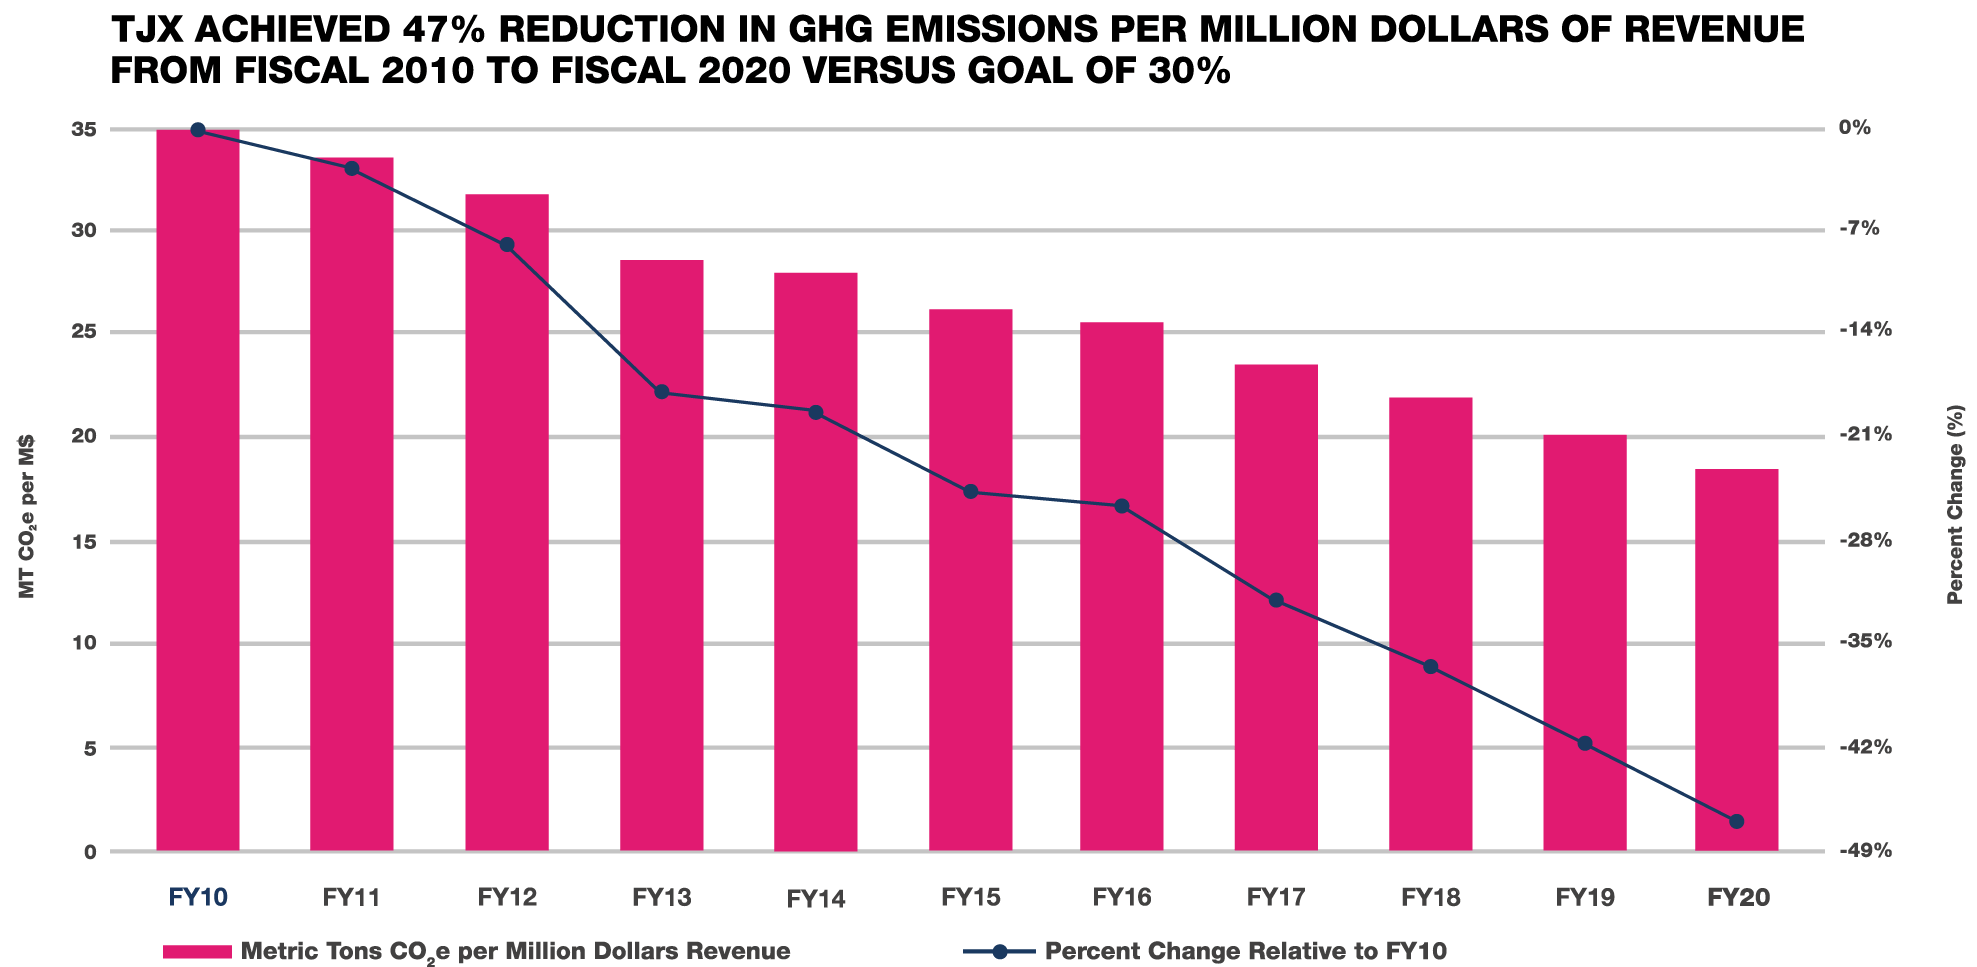 TJX achieved 47% reduction in GHG emissions per million dollars of revenue from fiscal 2010 to fiscal 2020 versus goal of 30%